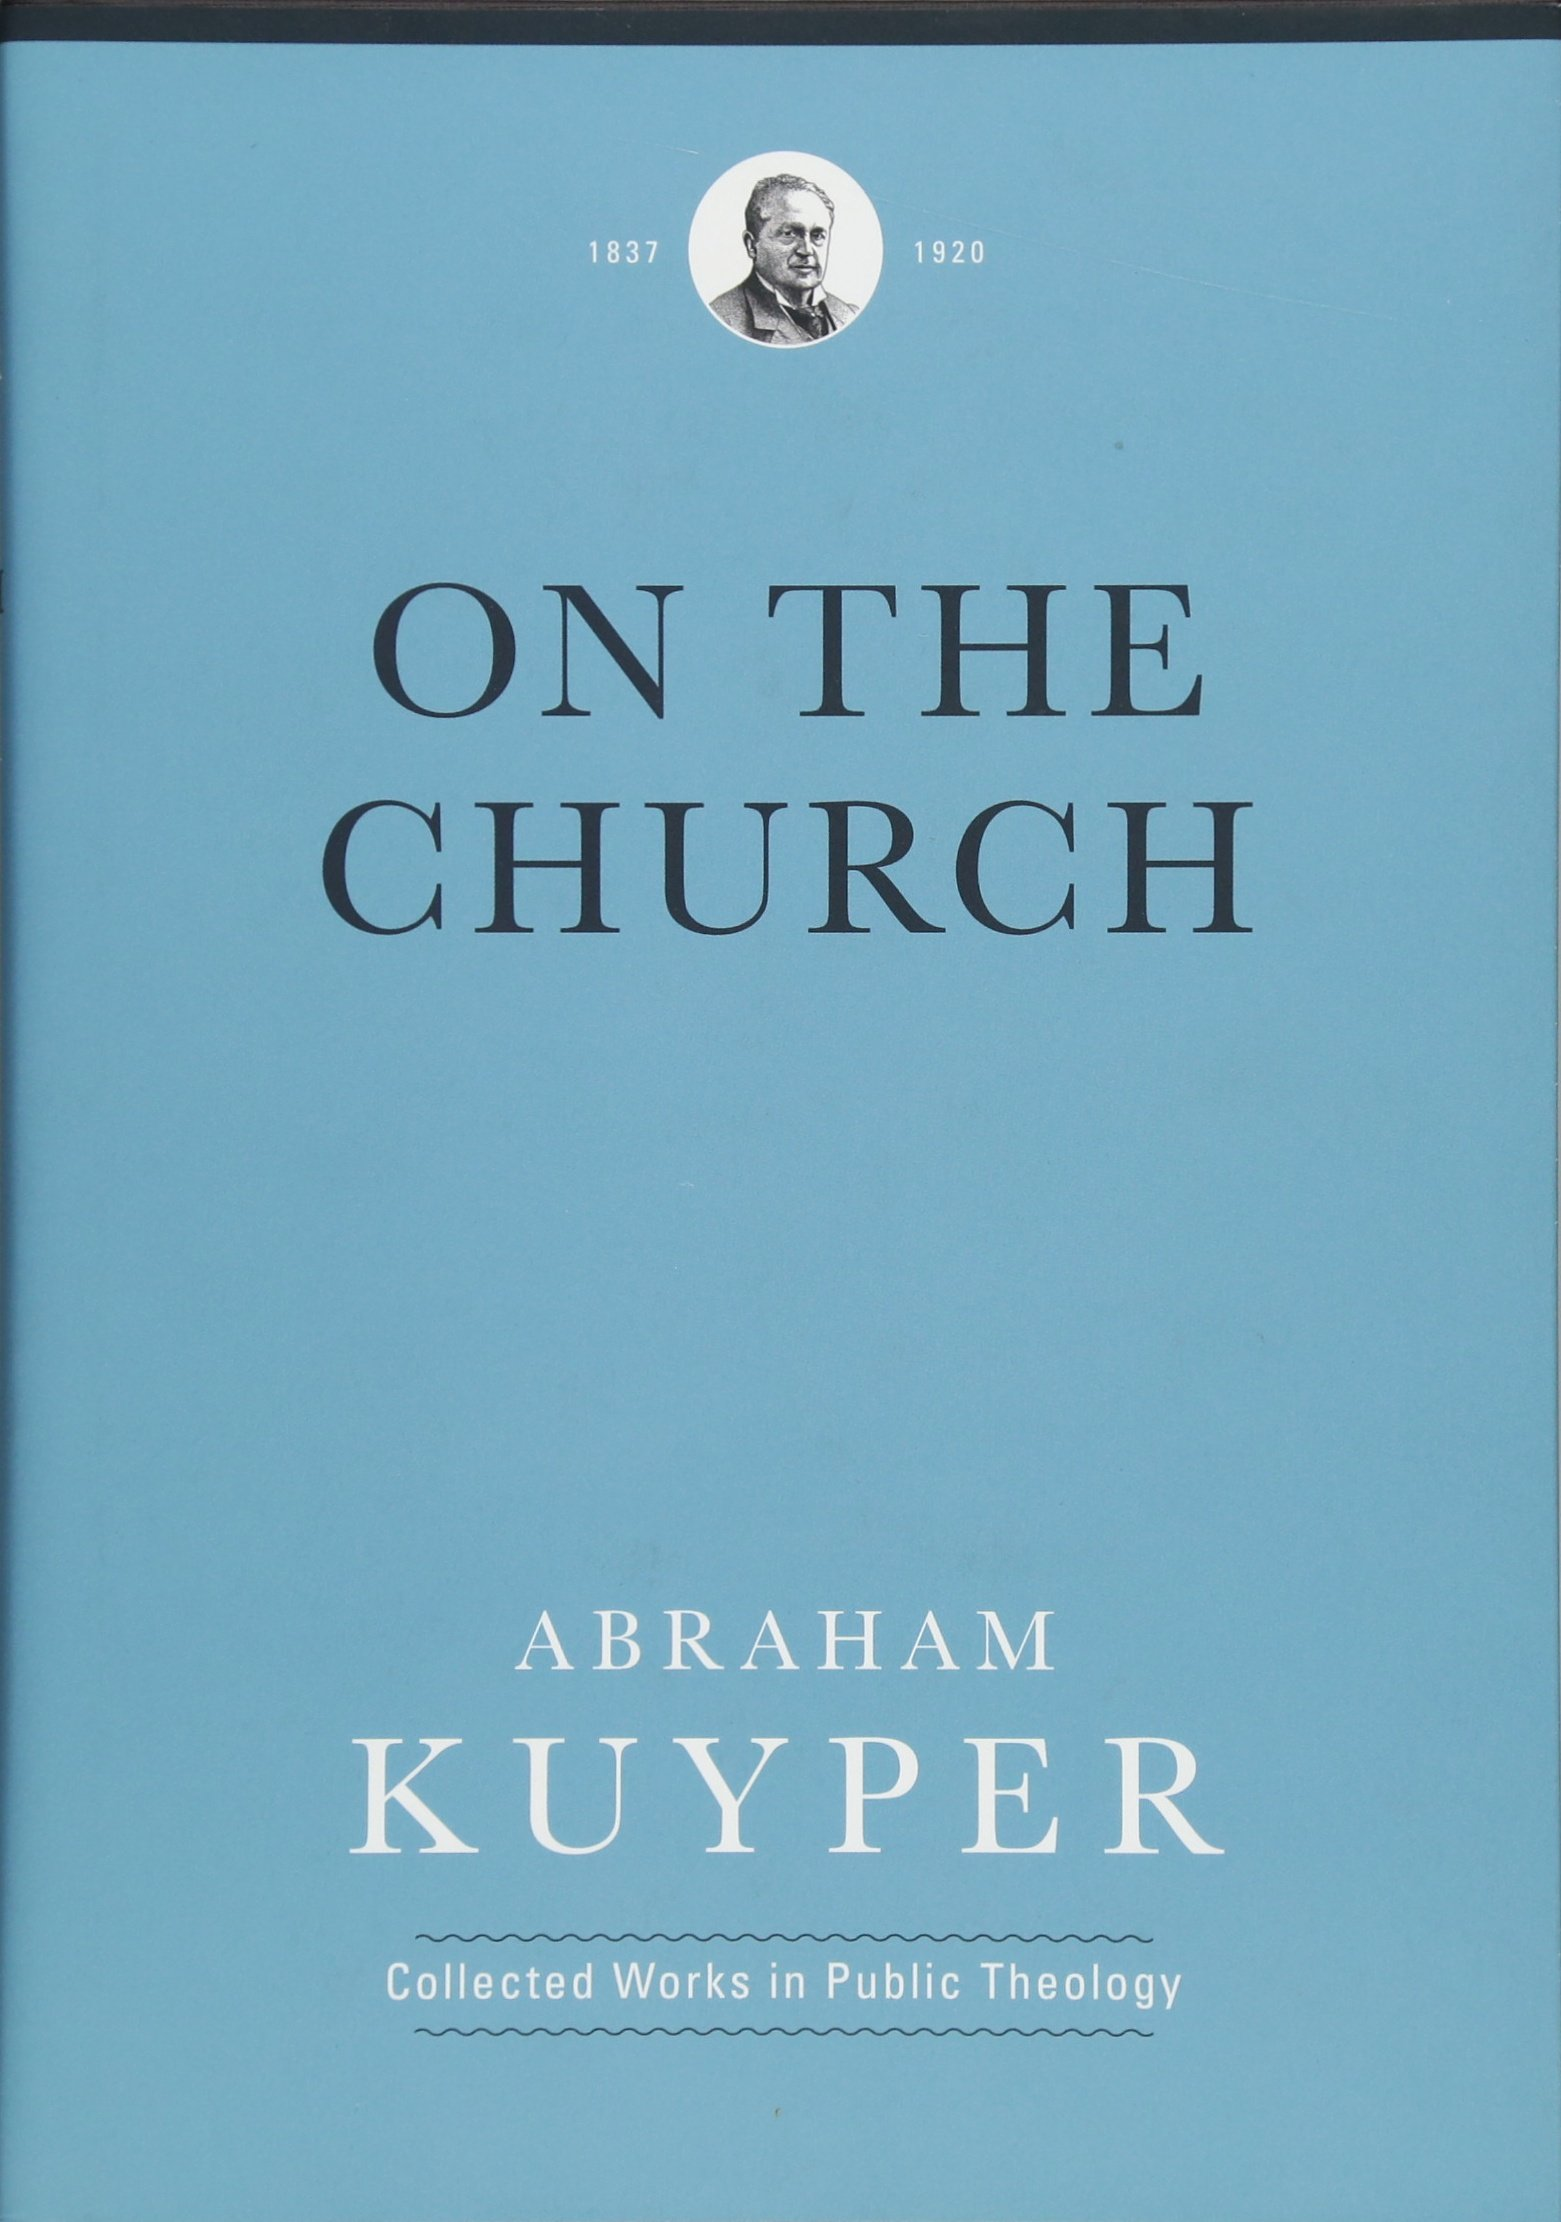 On the Church (Abraham Kuyper Collected Works in Public Theology) pdf